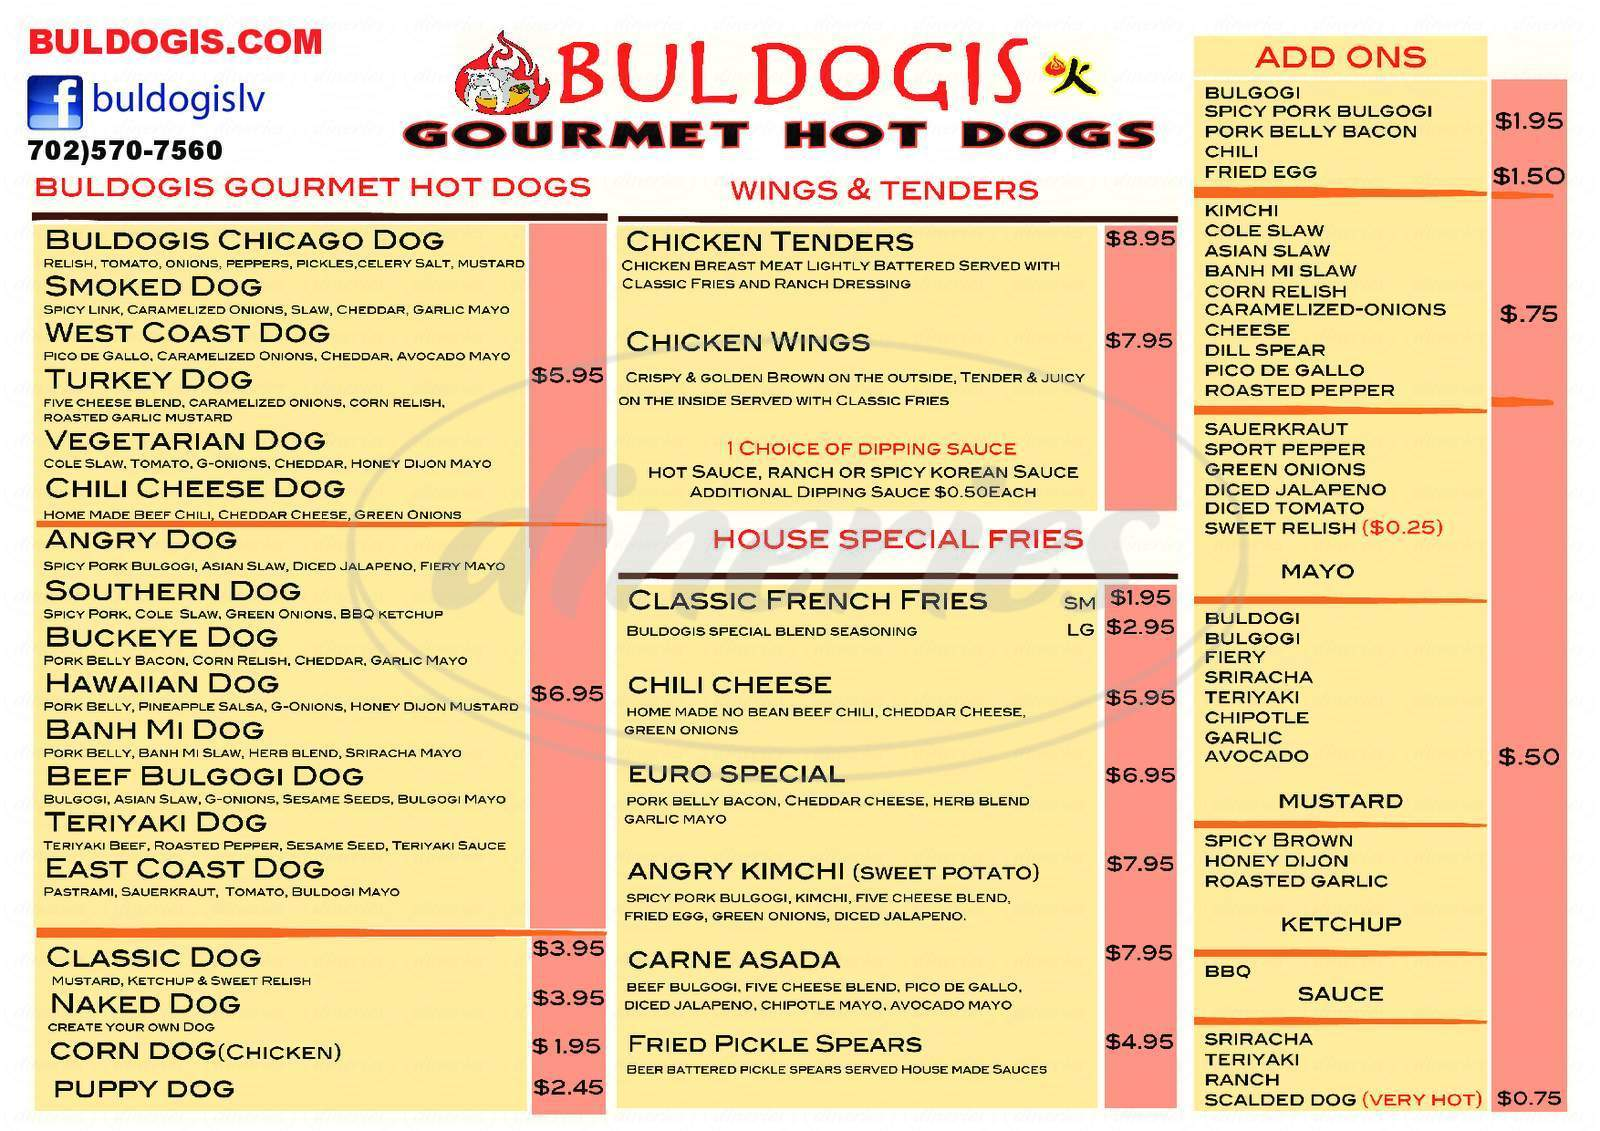 menu for Buldogis Gourmet Hot Dogs